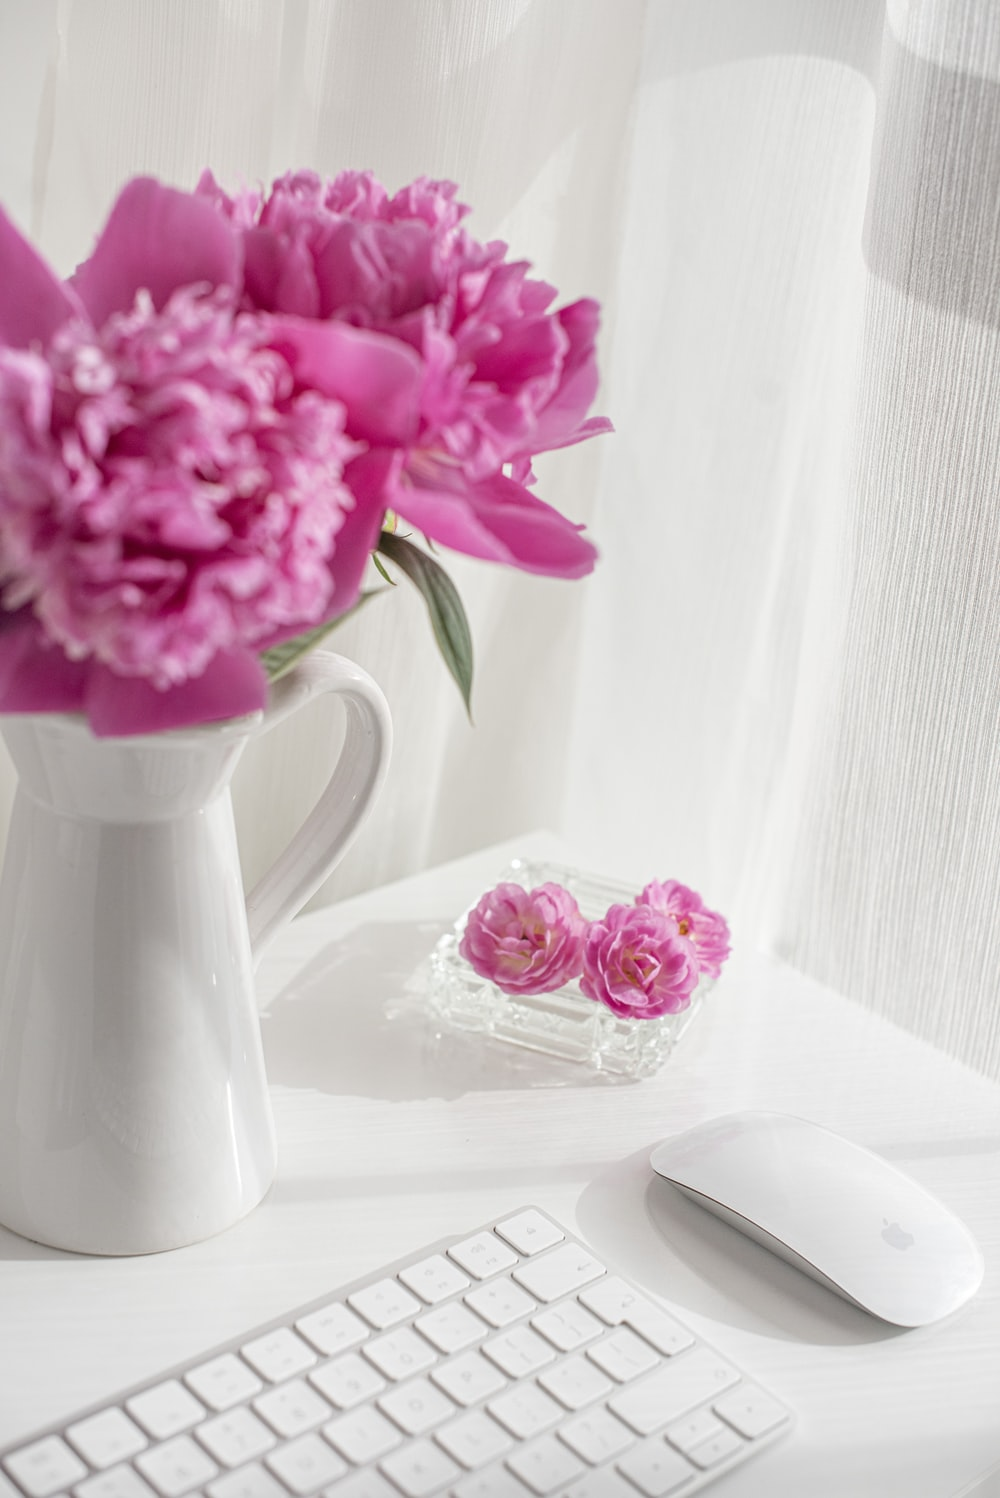 pink flowers in white ceramic vase on table